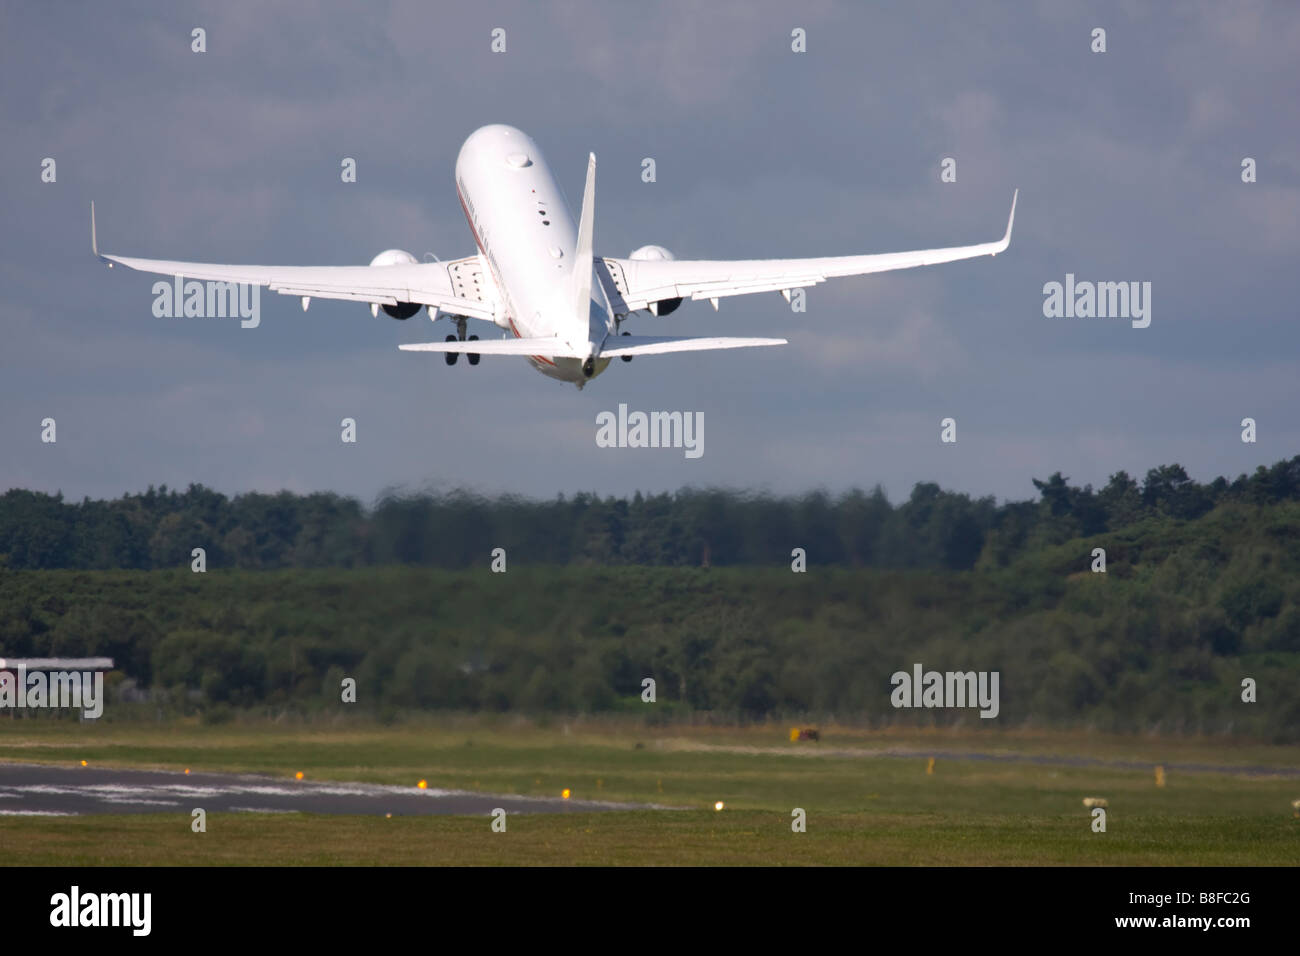 Business jet taking off Stock Photo